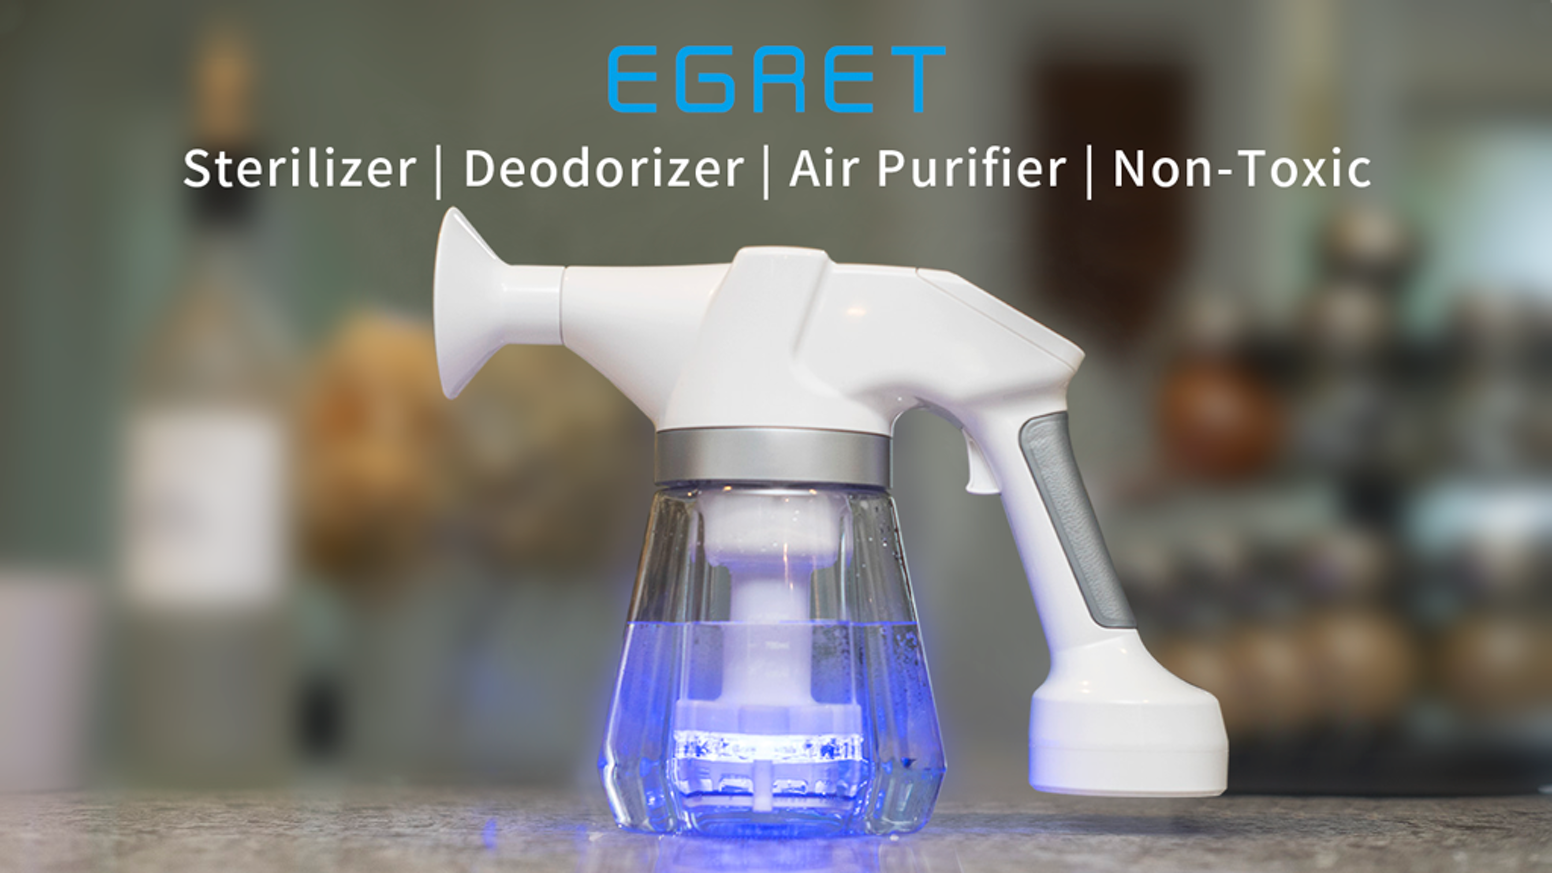 The first cleaning device that kills bacteria, germs, virus and defeat odors in seconds. Patented technology.